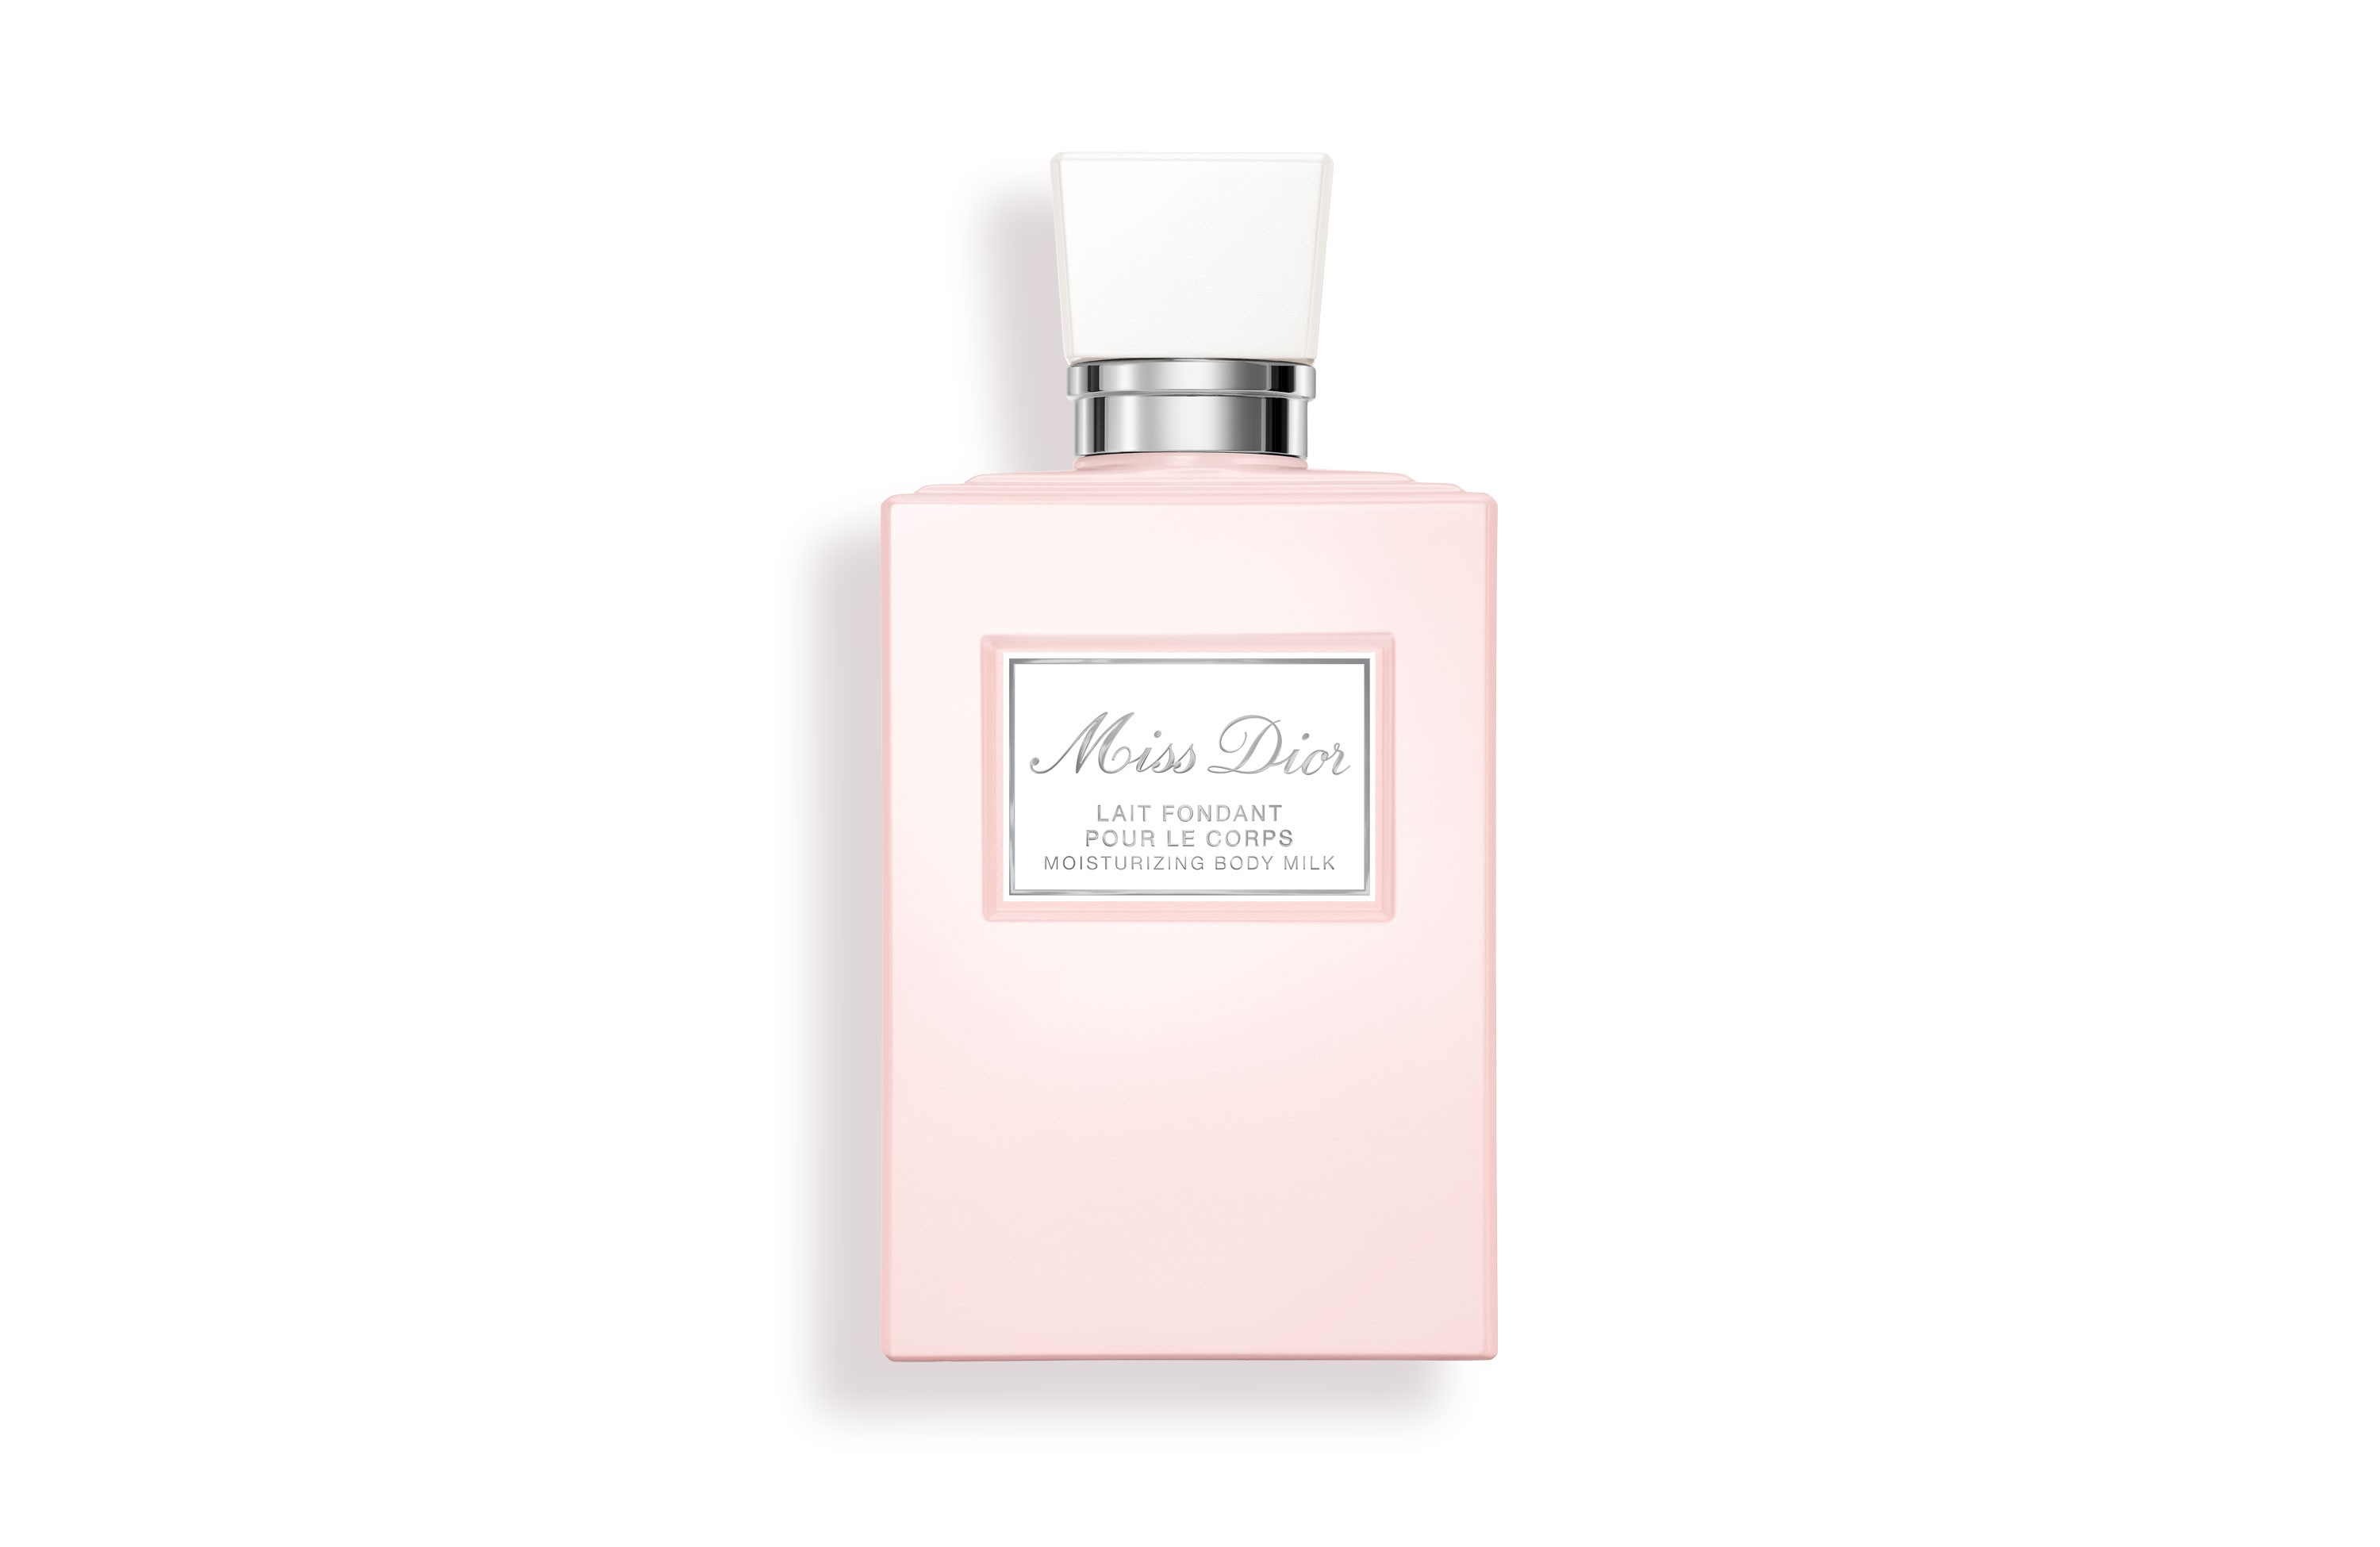 Dior Miss Dior Moisturizing Body Milk